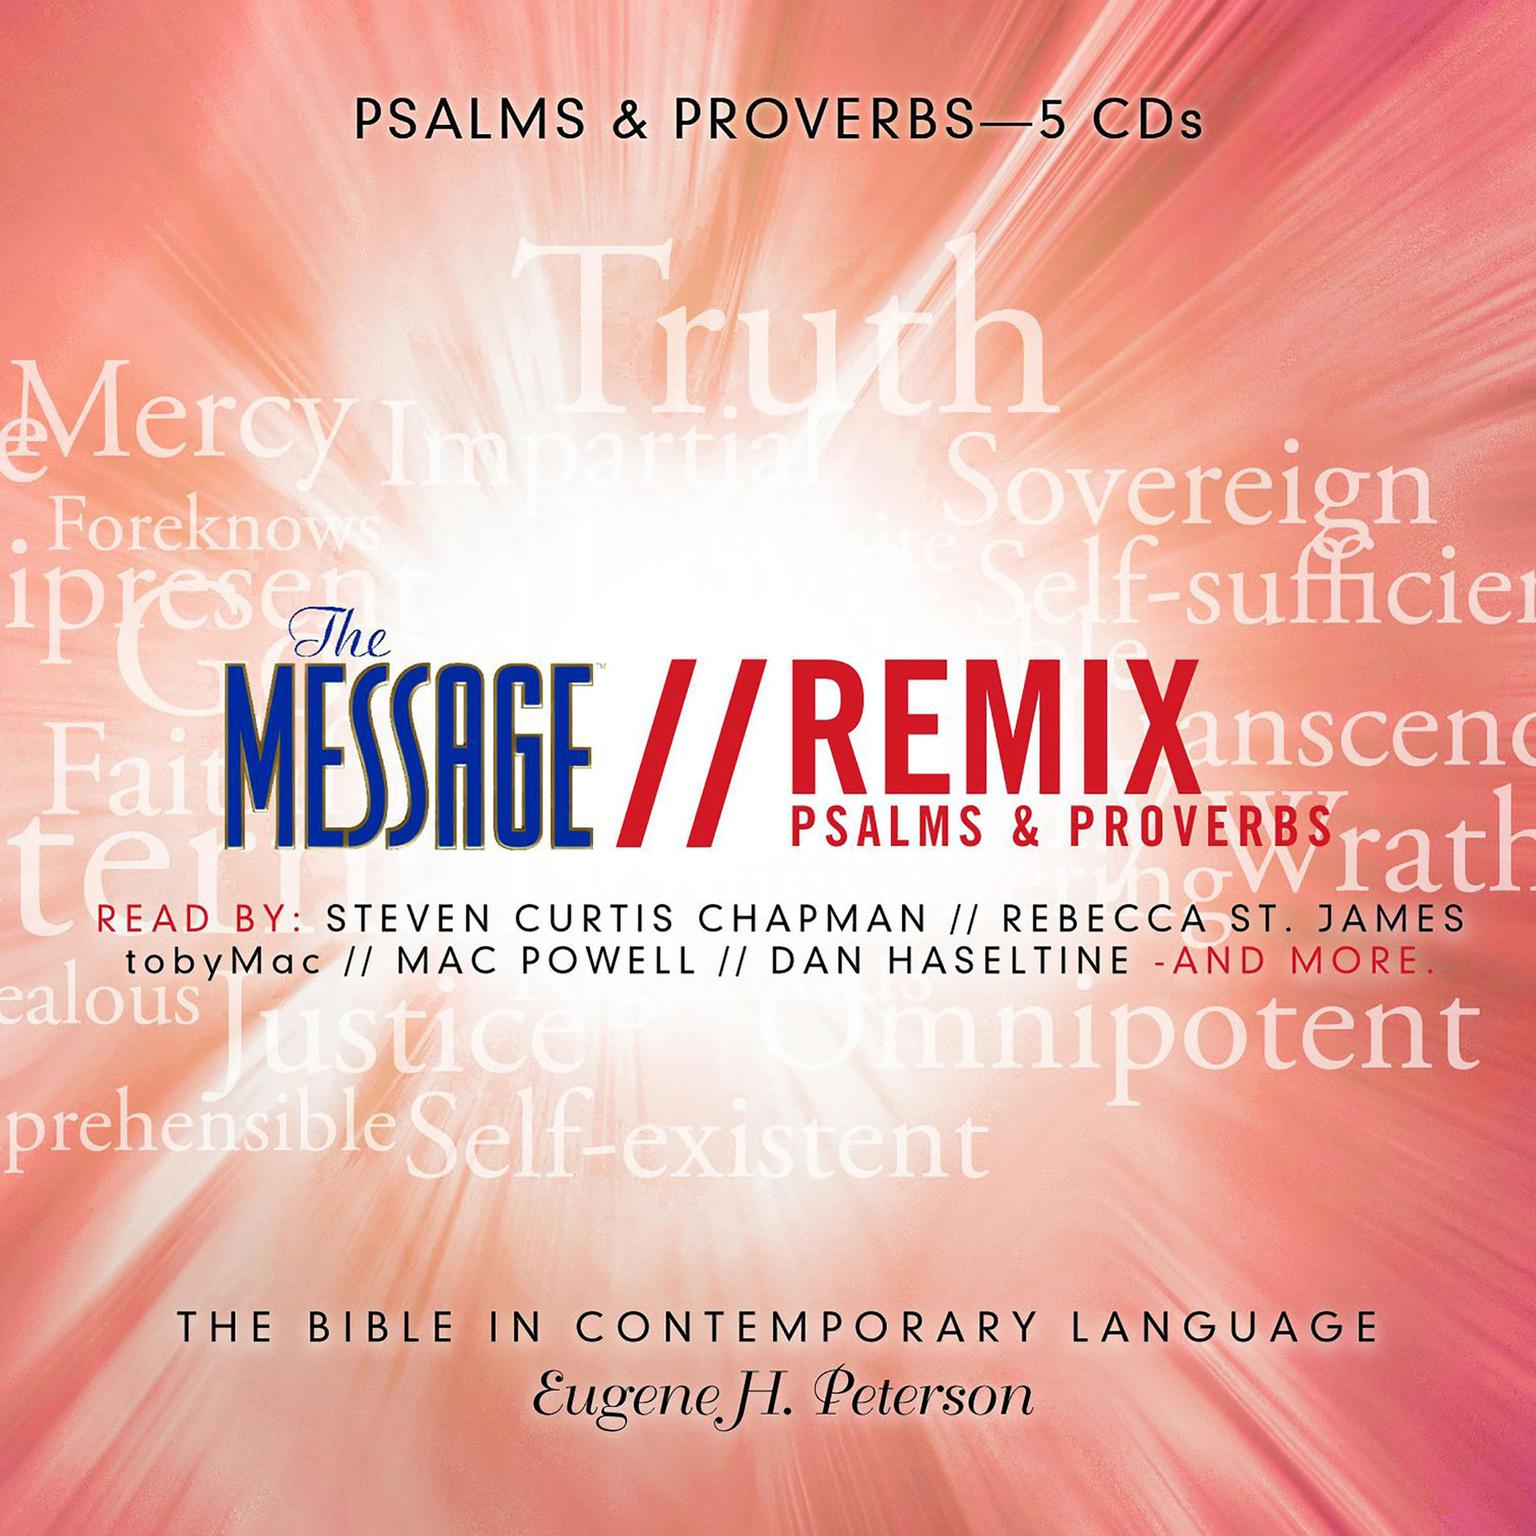 Printable The Message Bible Remix Psalms & Proverbs Audiobook Cover Art